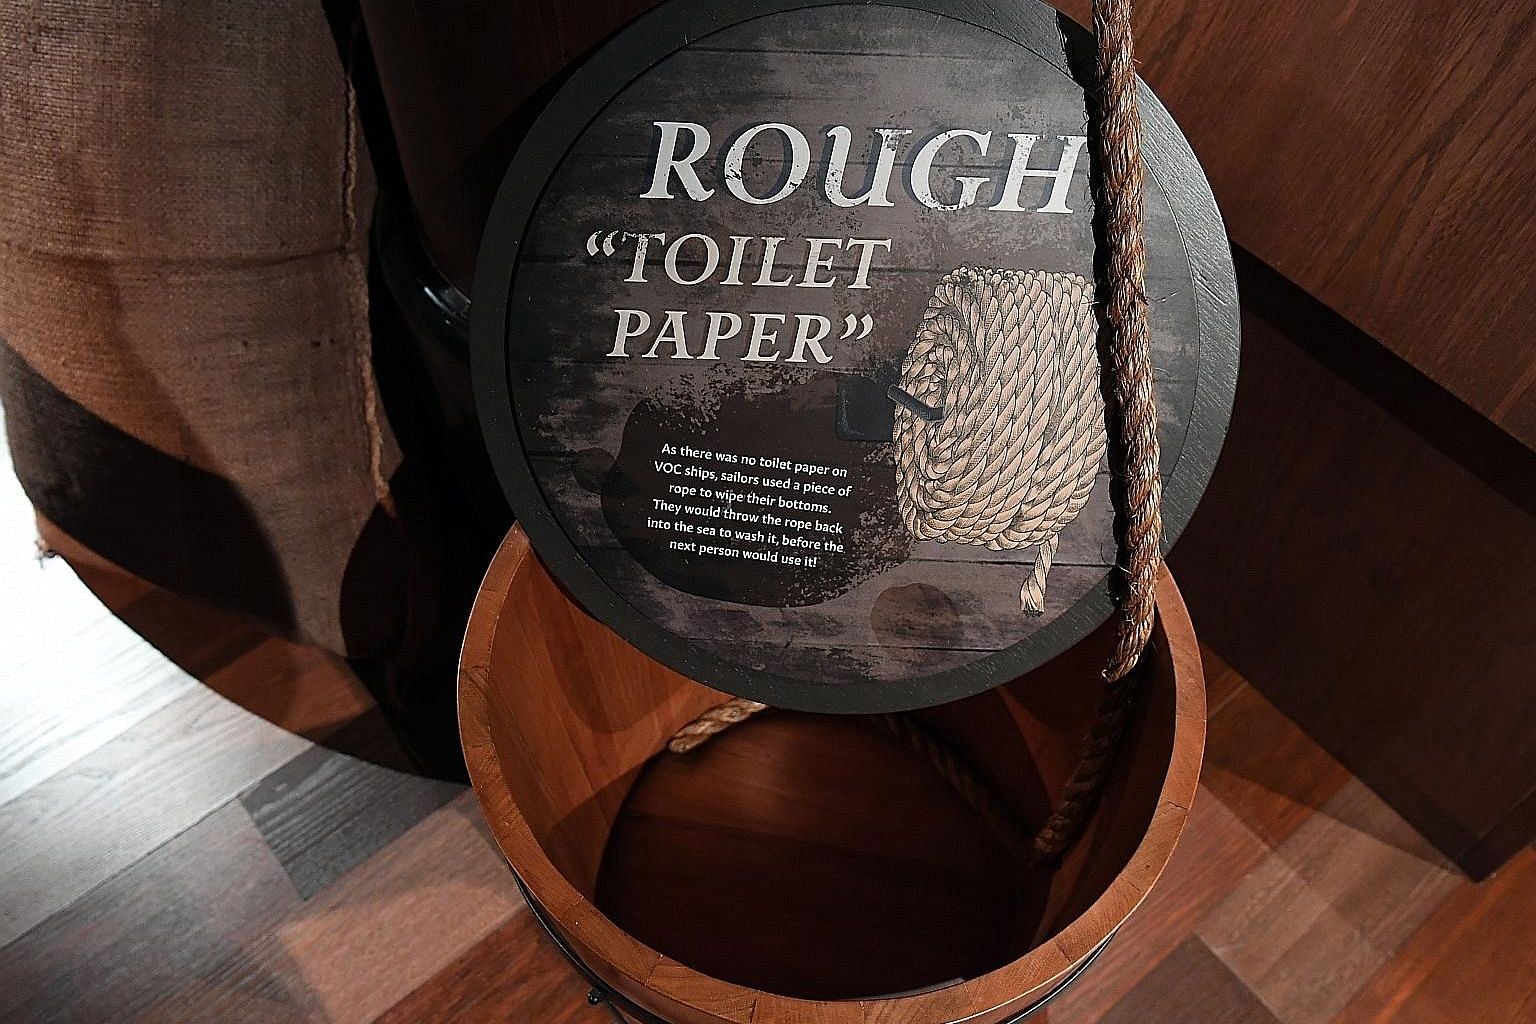 A display at the exhibition, An Old New World, depicts what toilets were like on board a 17th-century Dutch East India Company ship.